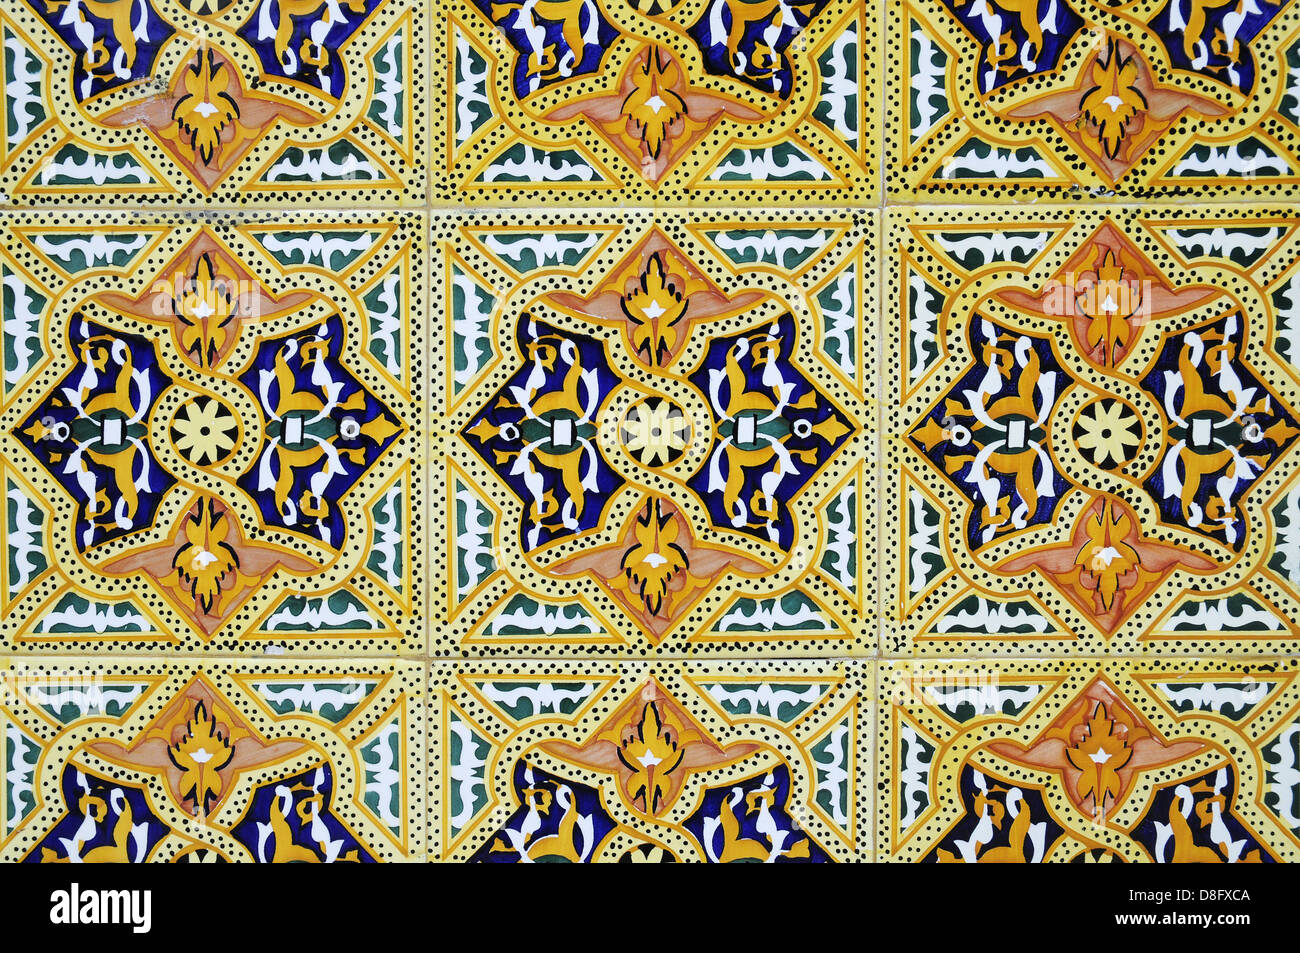 Old tiles - Stock Image